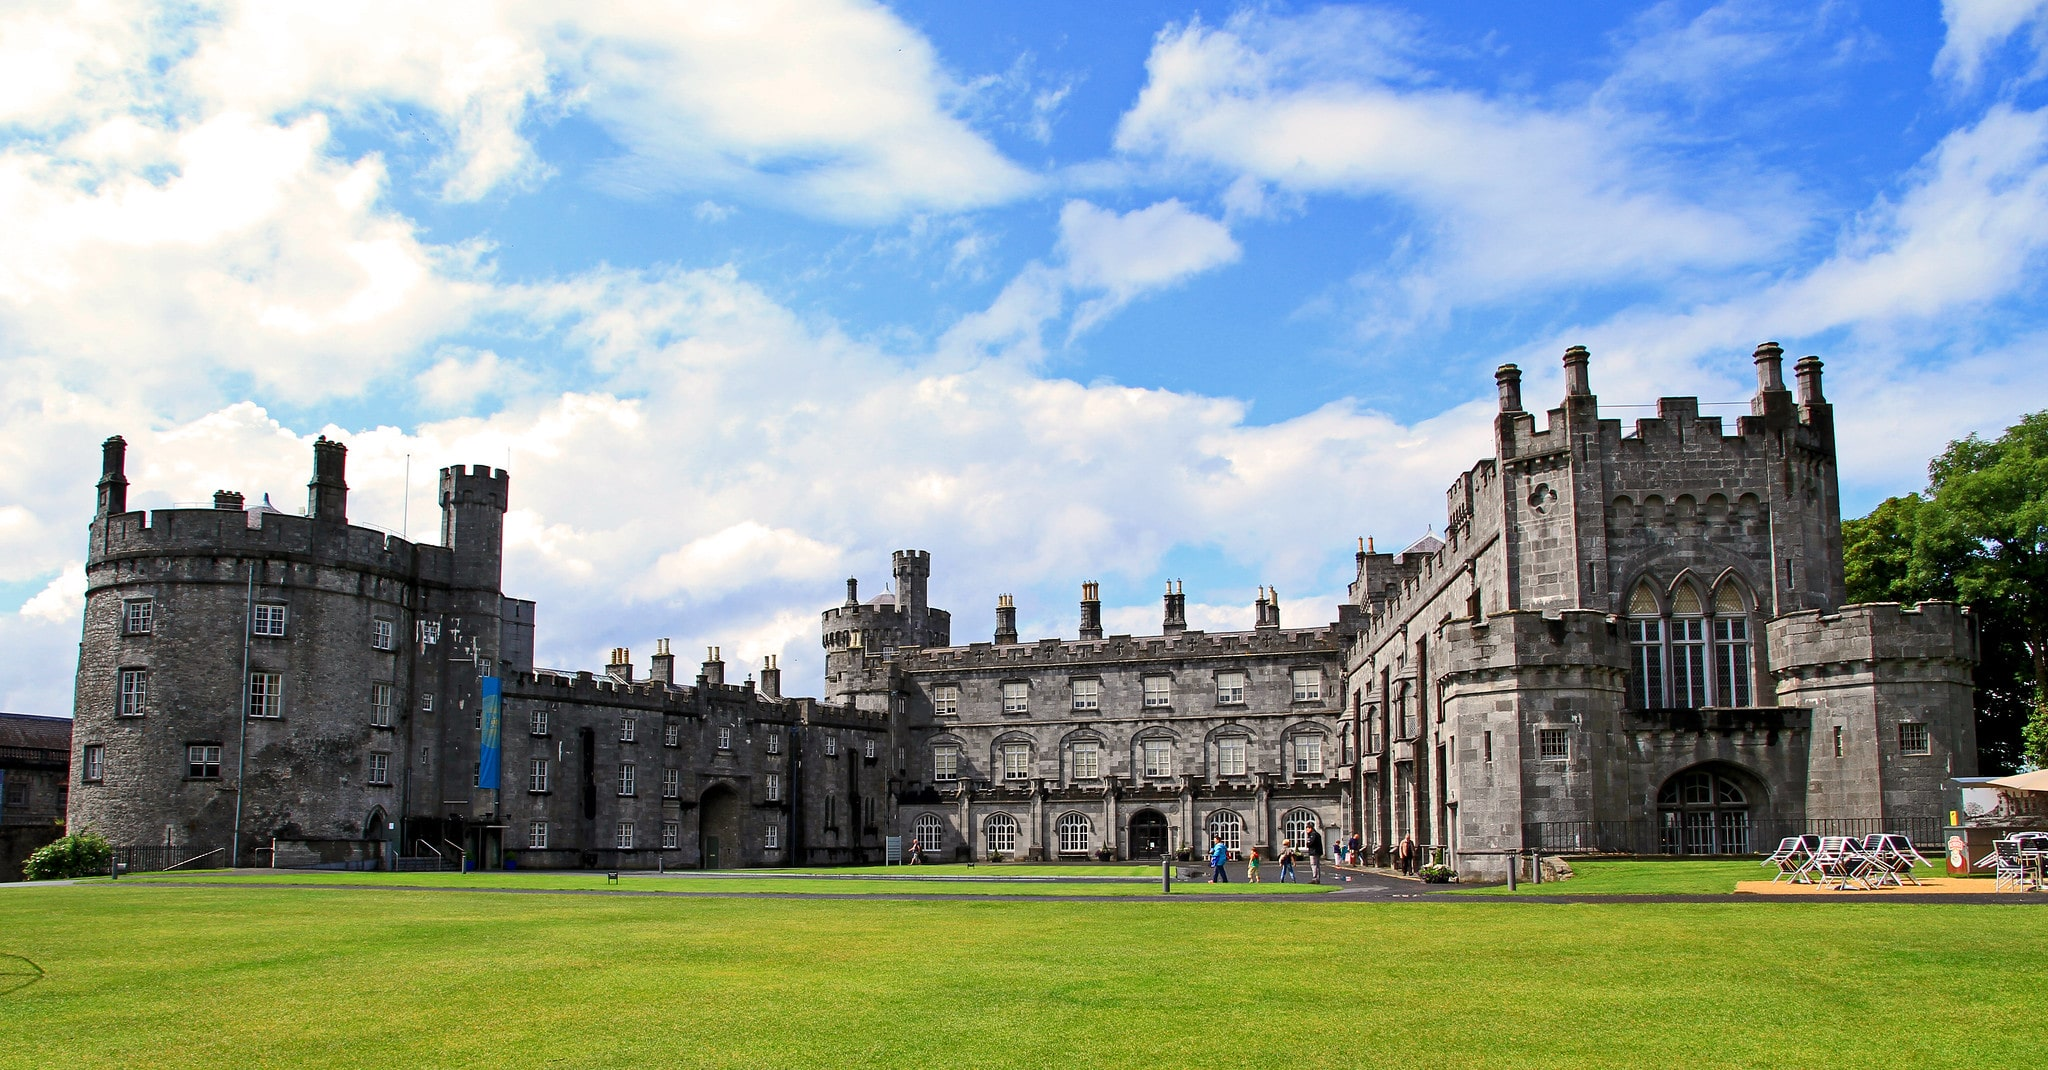 Exploring Kilkenny Castle is a great thing to do in Kilkenny Ireland